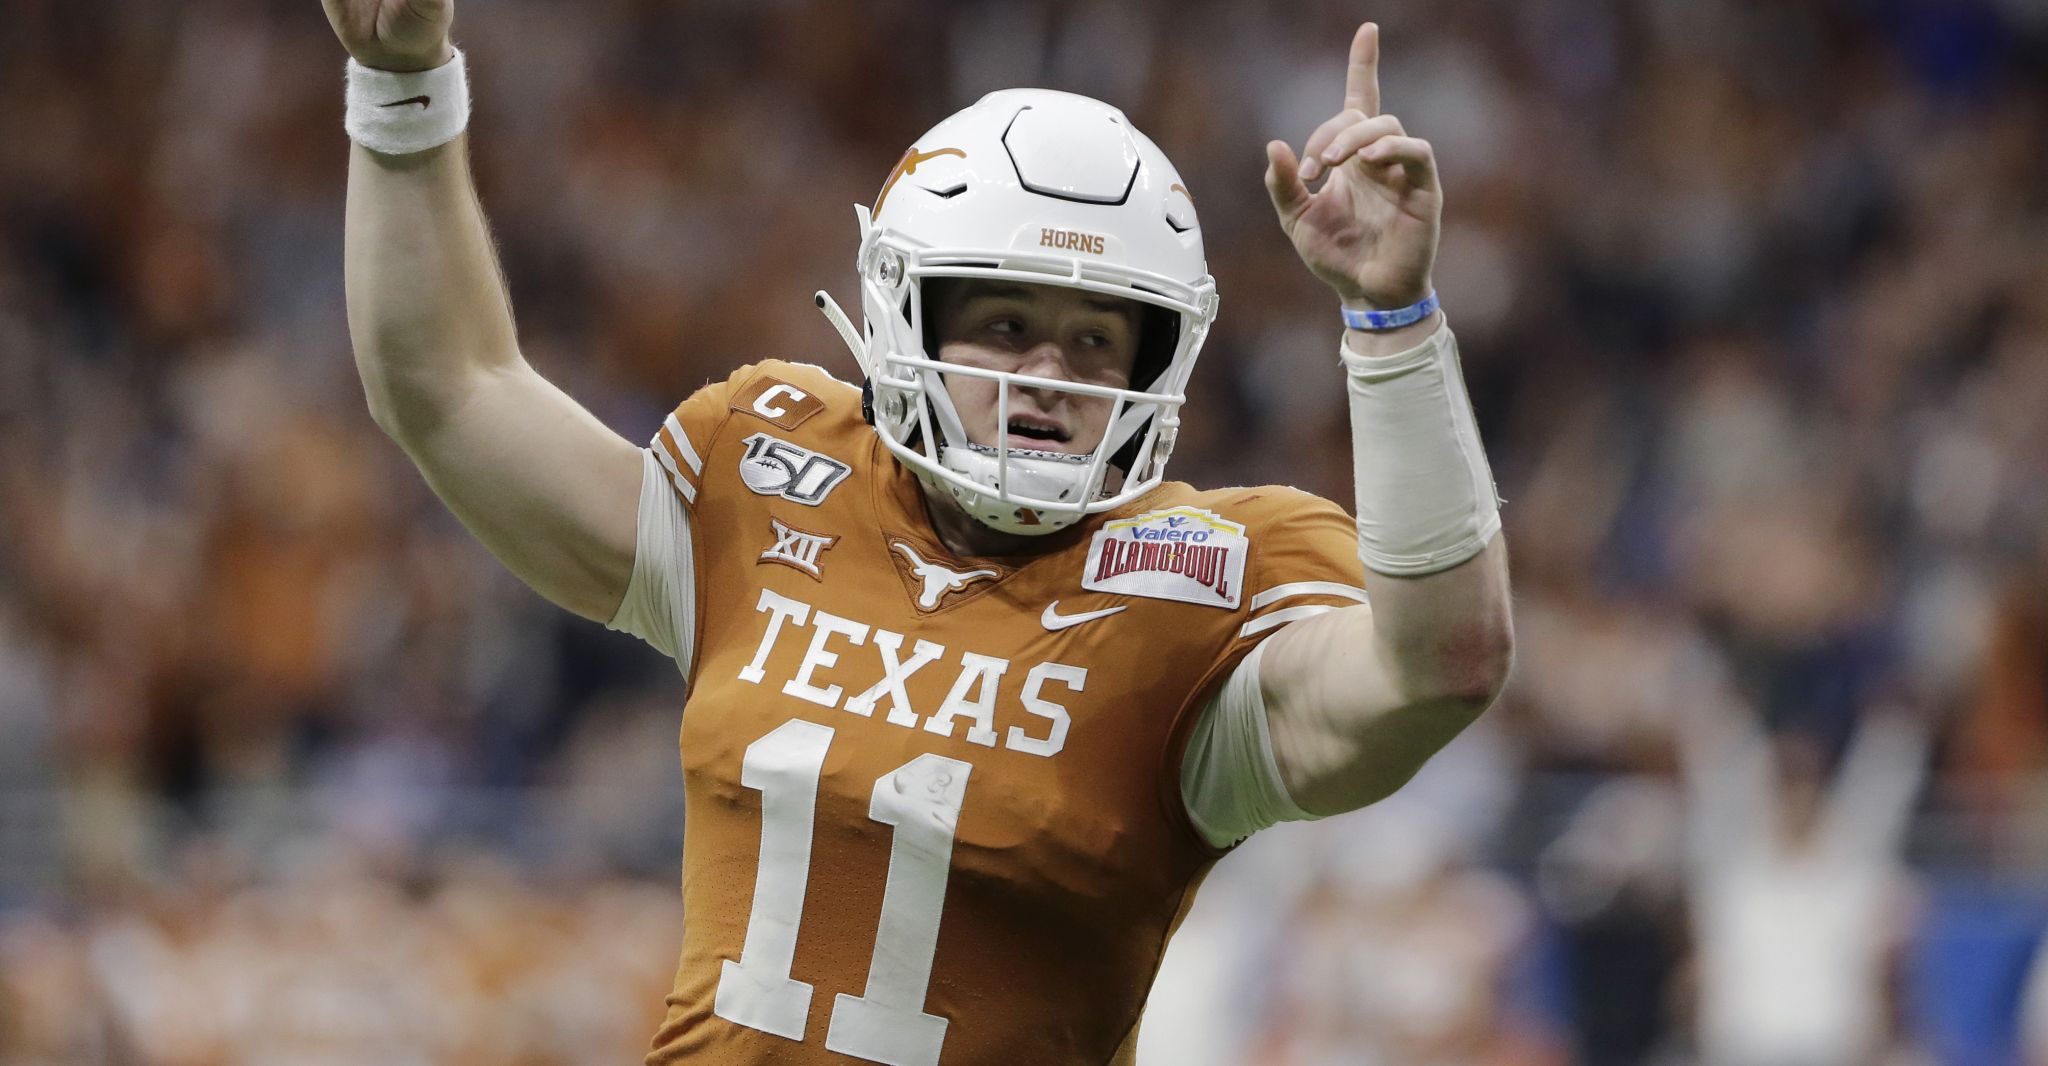 Texas college football rankings: Longhorns look to improve on No. 1